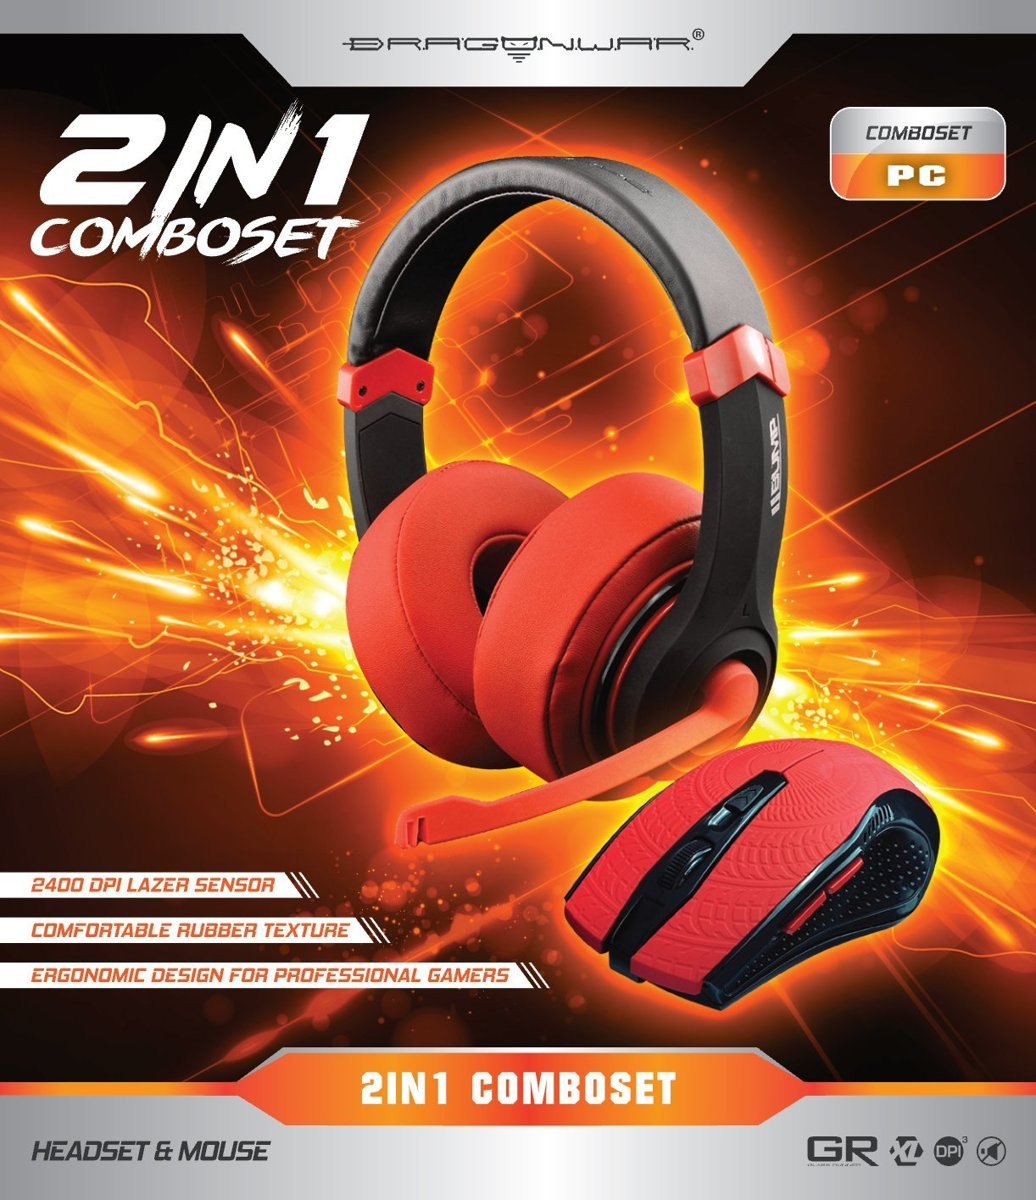 Dragonwar 2 in 1 Combo Set Gaming Headset Mouse Red Edition